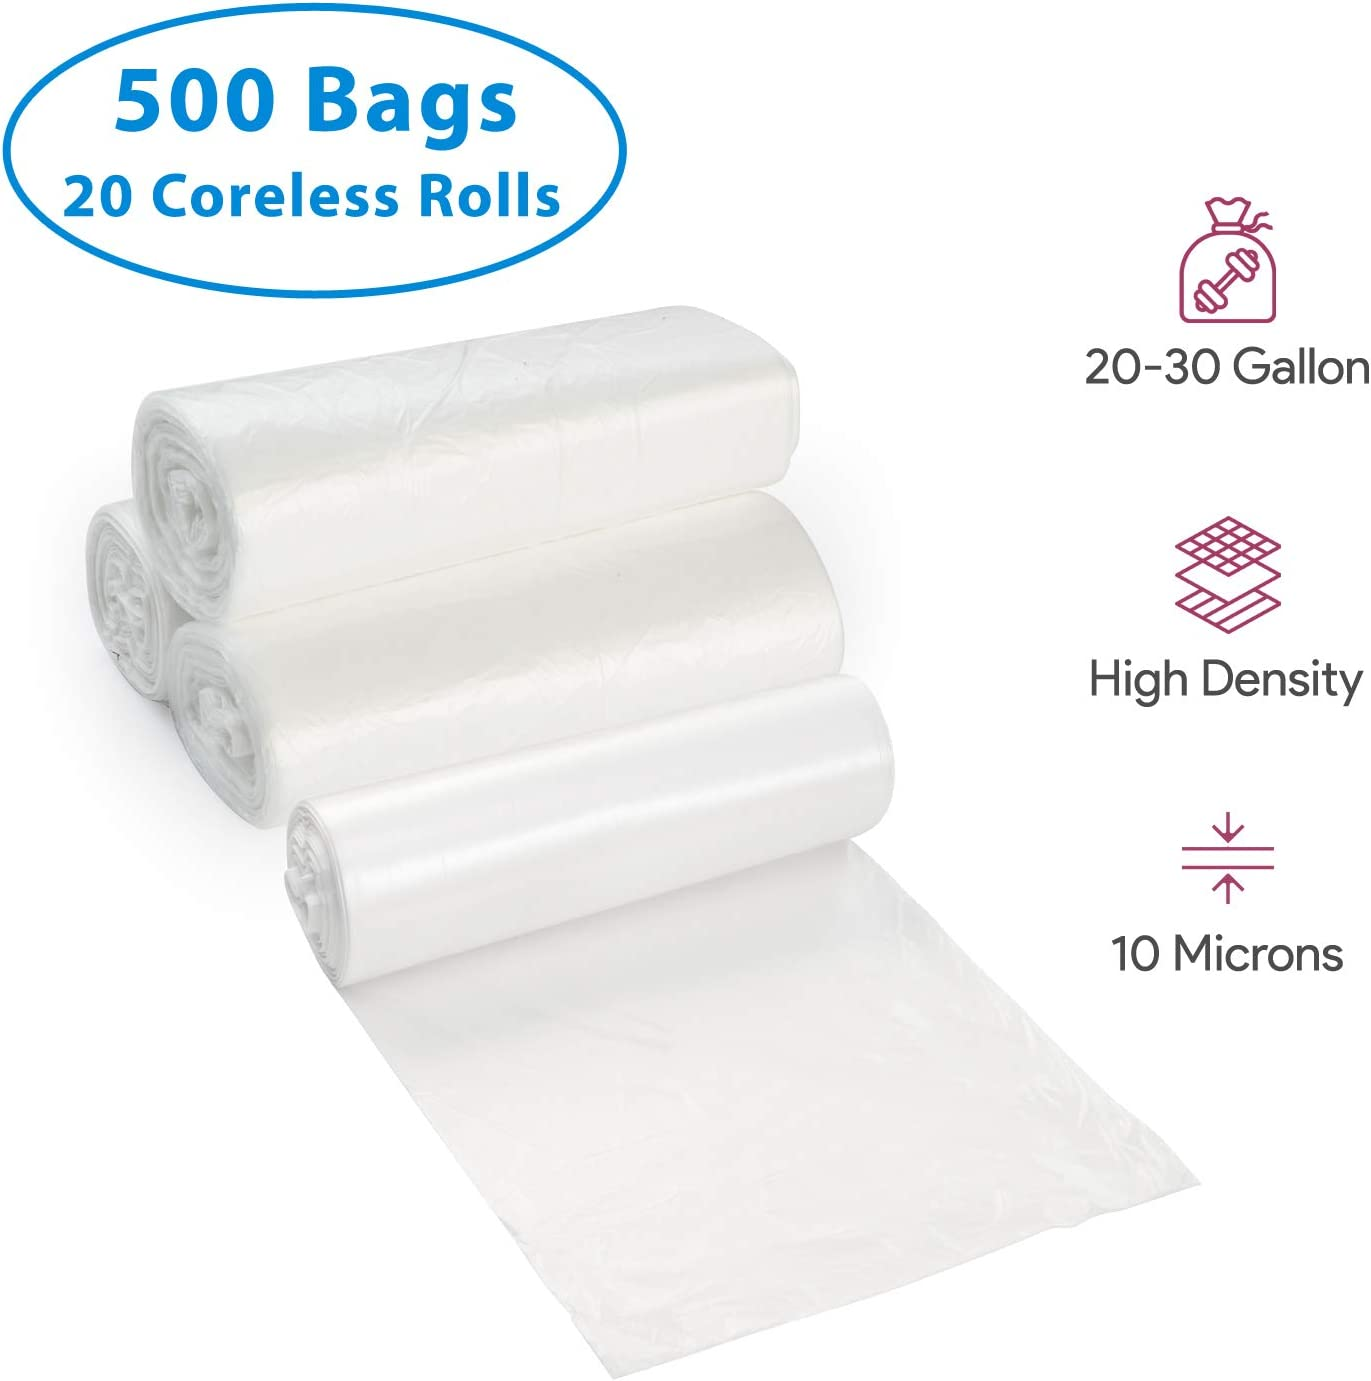 20-30 Gallon Clear Garbage Can Liners, 500 Count - Medium - Large Trash Can Liners - High Density, Thin, Lightweight, 10 Microns - For Office, Home, Hospital, Wastebaskets -20 Coreless Rolls